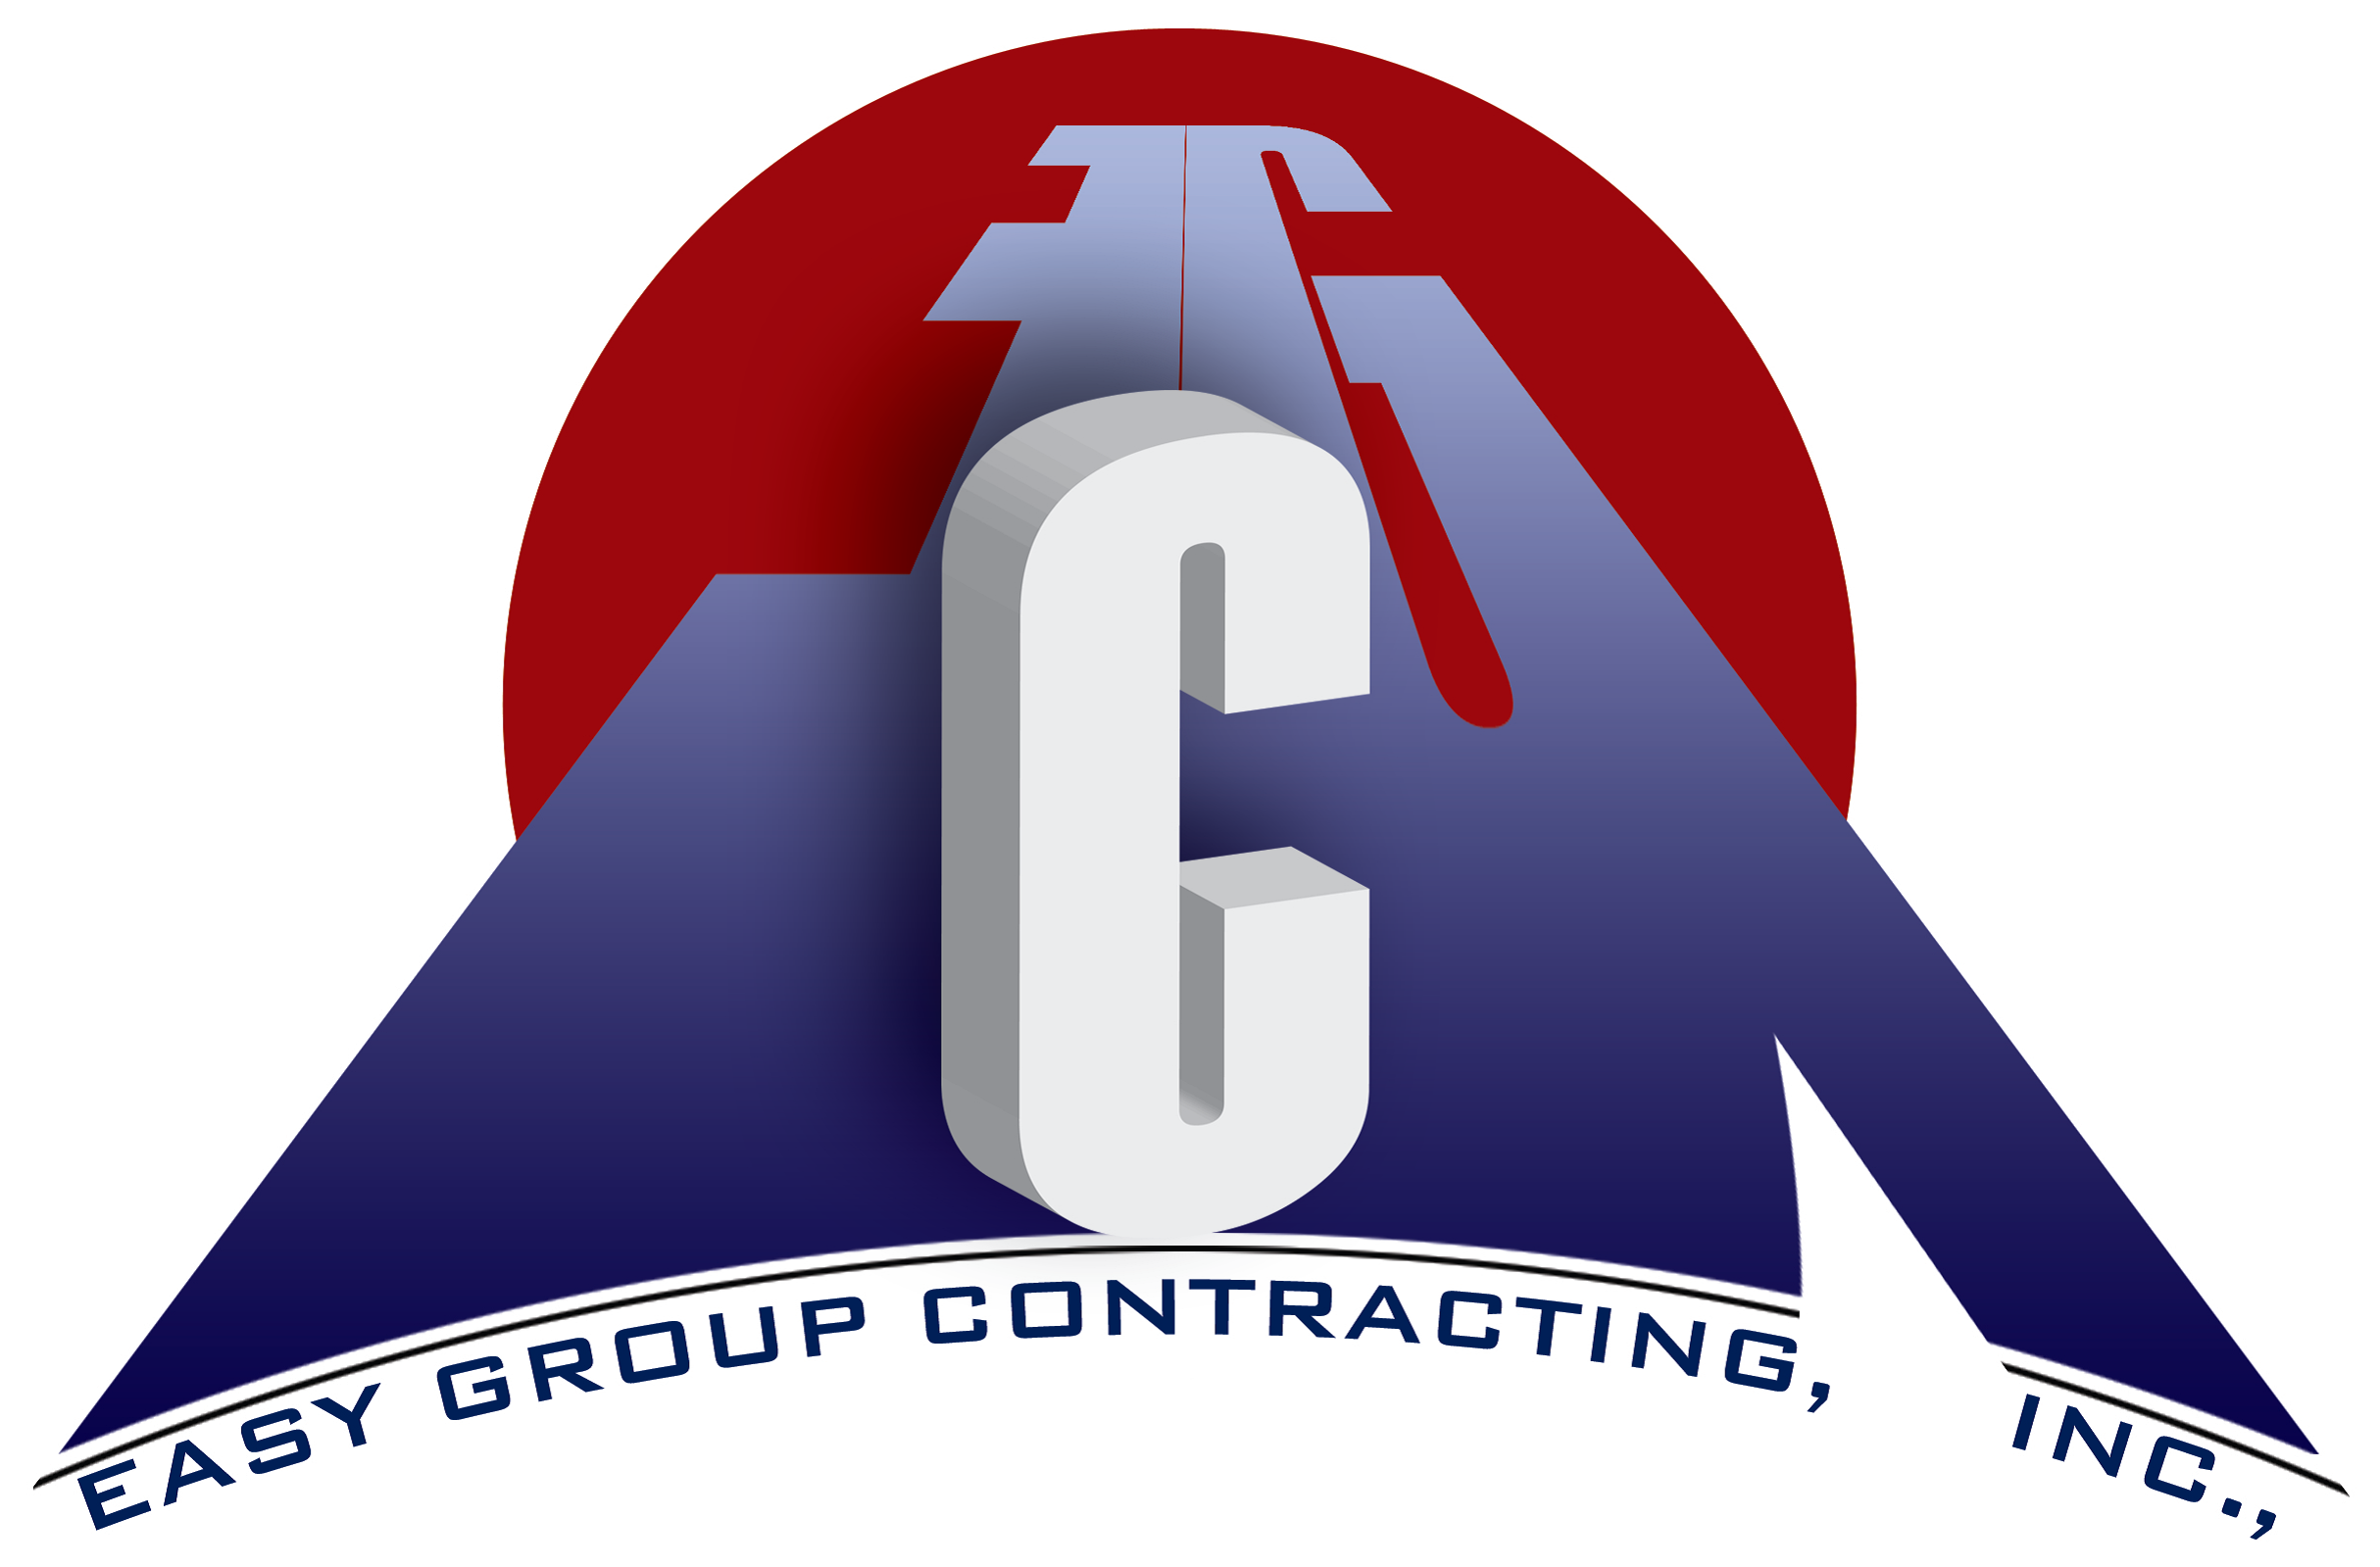 Easy Group Contracting, Inc.